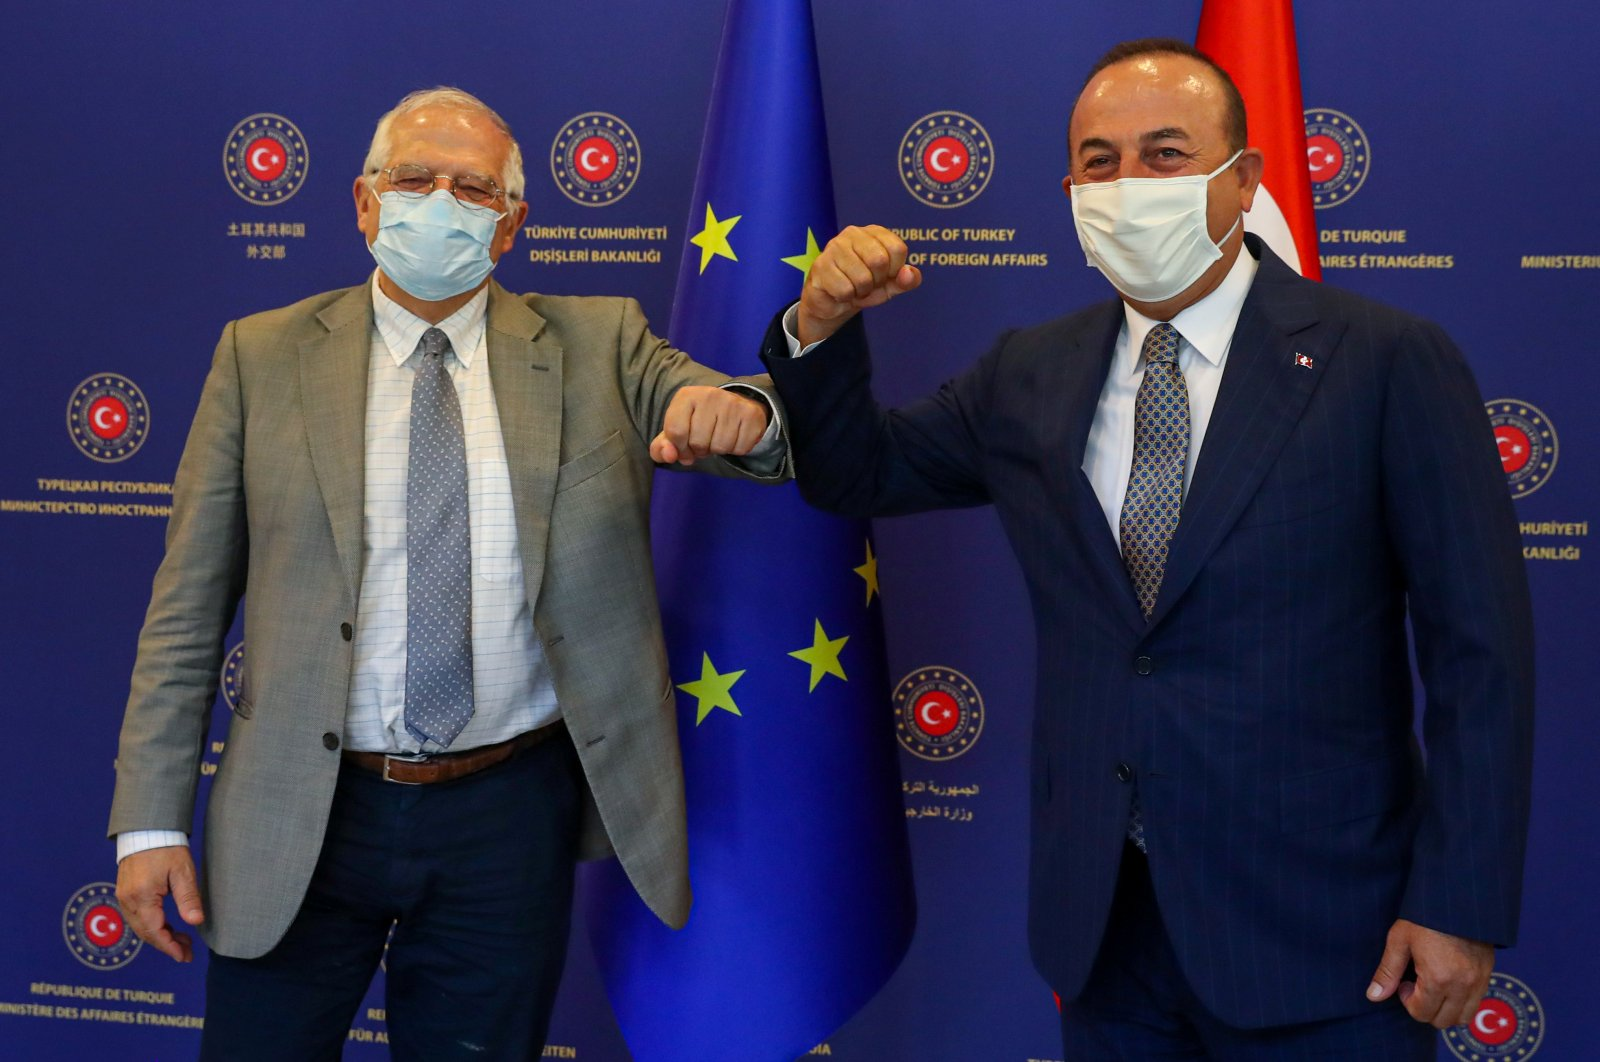 Foreign Minister Mevlüt Çavuşoğlu and Josep Borrell Fontelles, High Representative of the European Union for Foreign Affairs and Security Policy, both wearing protective face masks, pose before their meeting in Ankara, Turkey, July 6, 2020. (Turkish Foreign Ministry/Handout via Reuters)